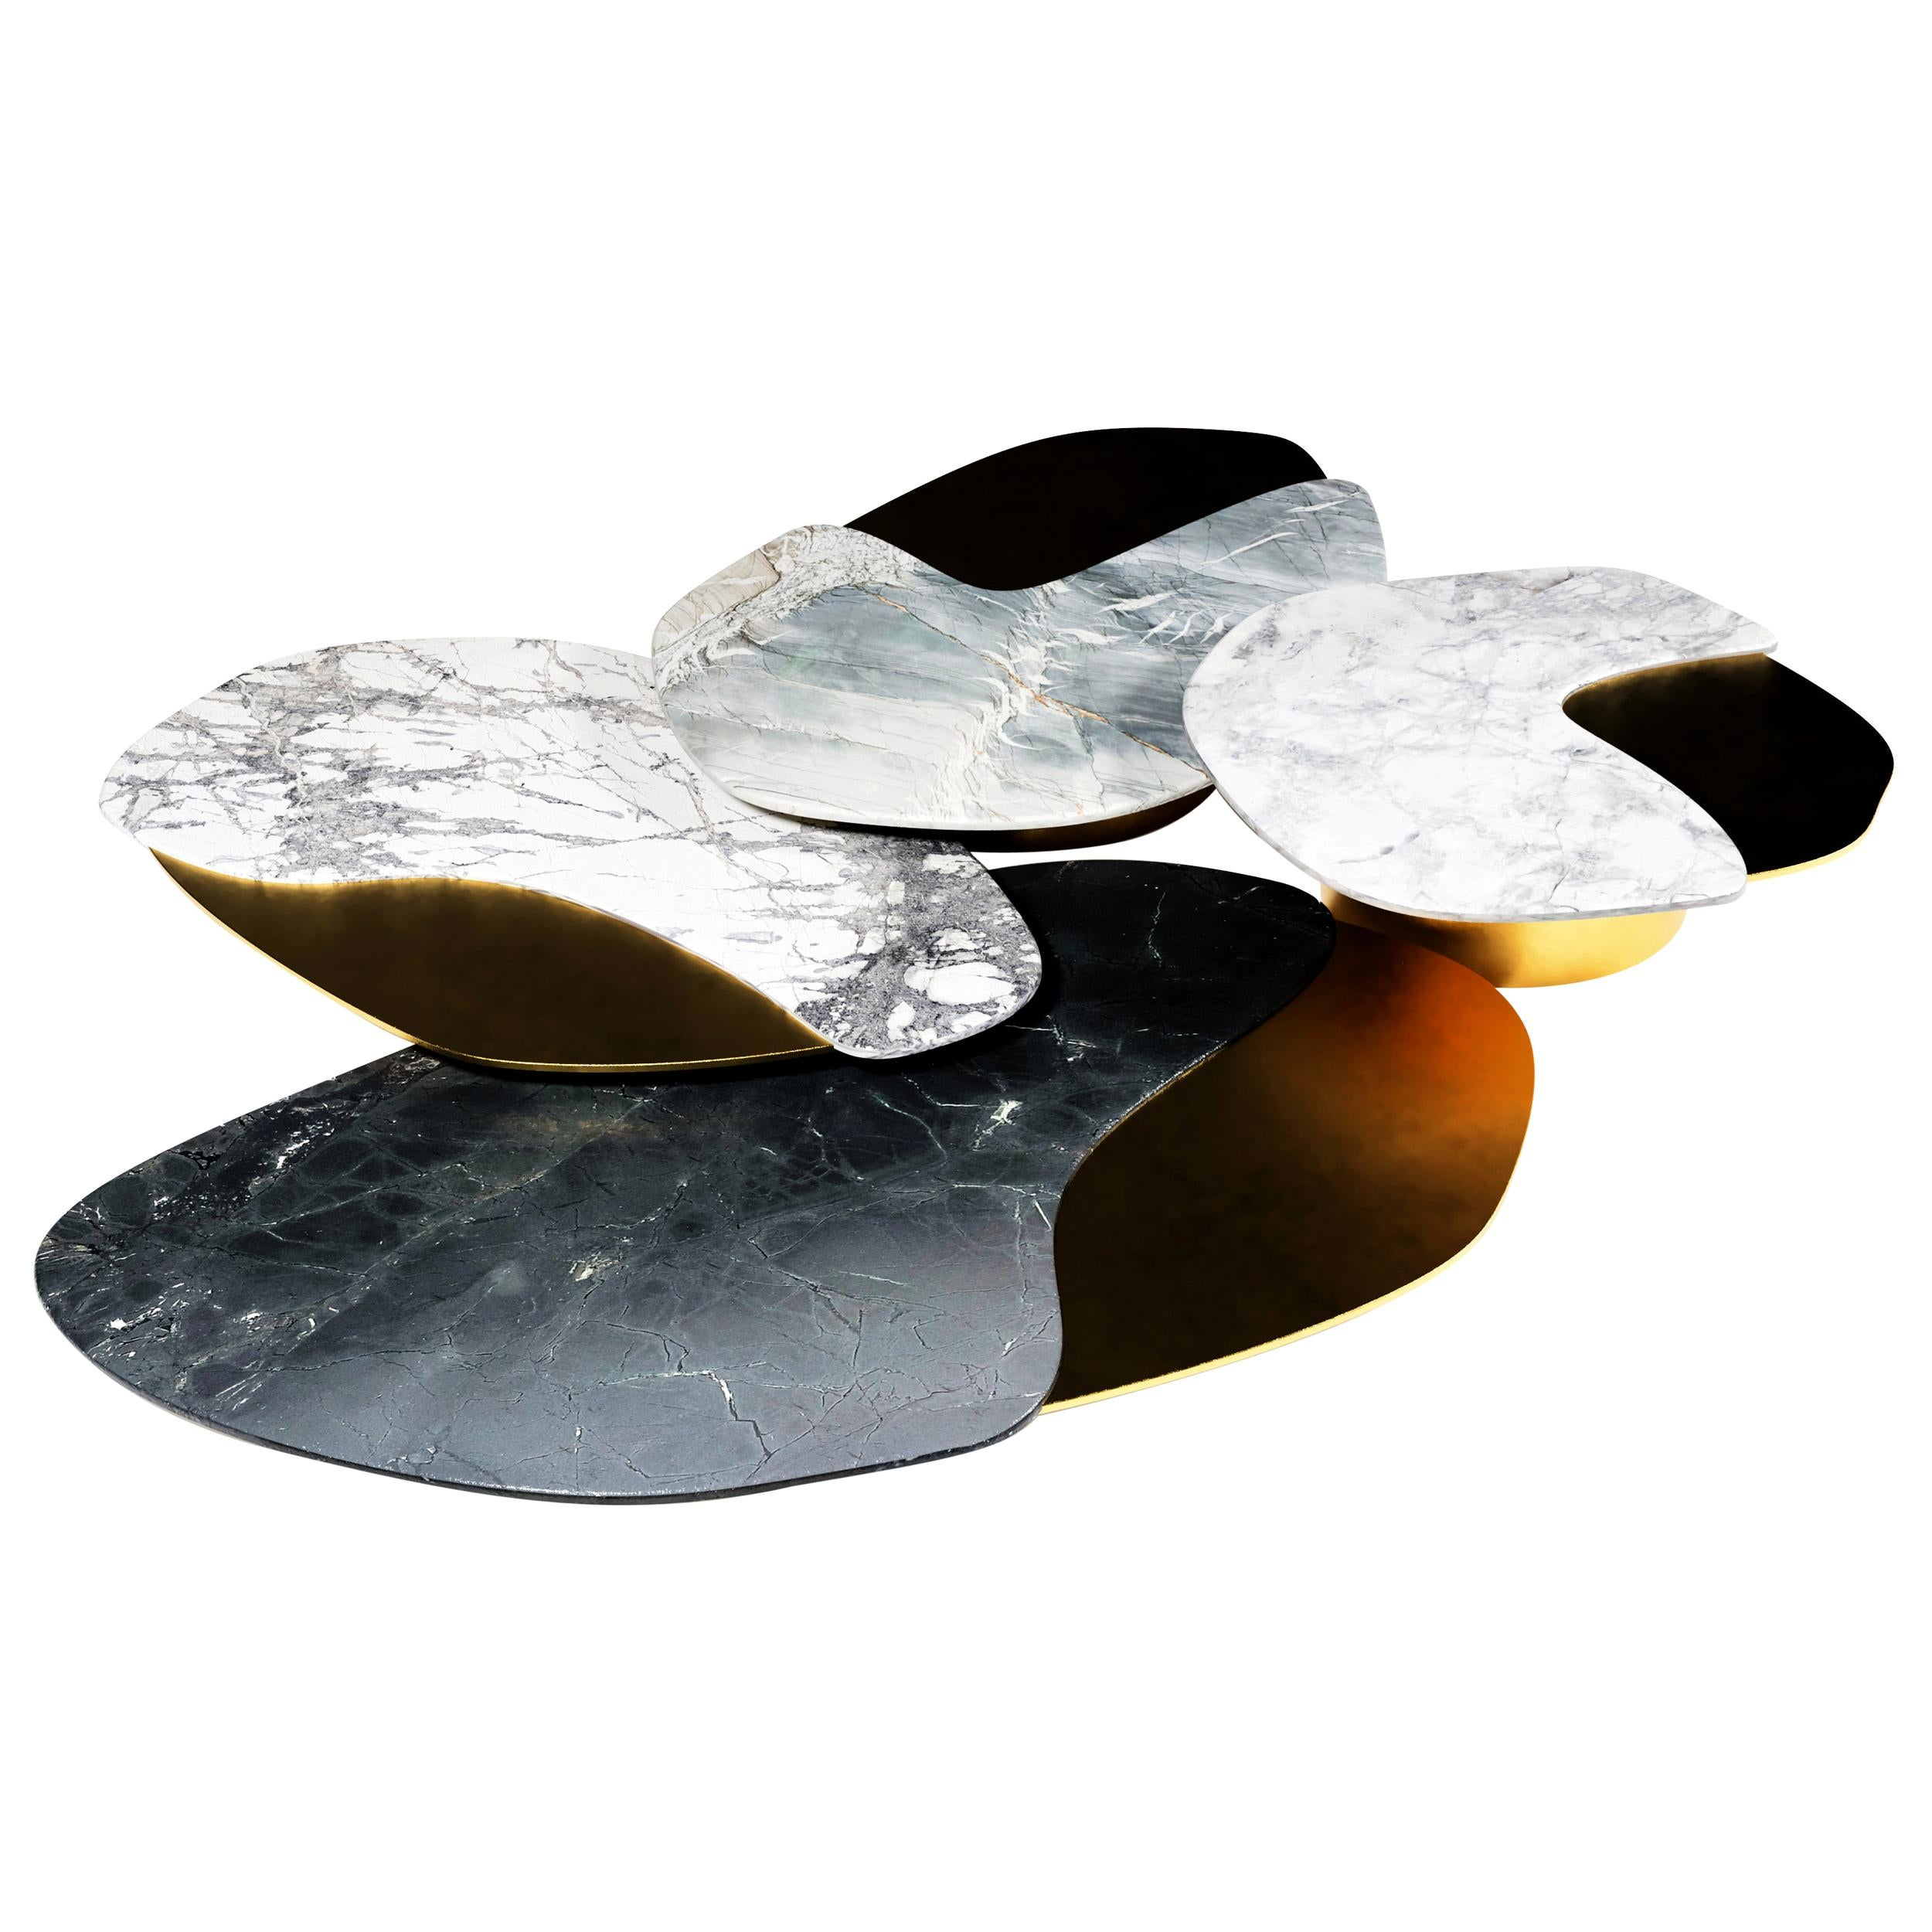 The Epicure Coffee Table, 1 of 1 by Grzegorz Majka